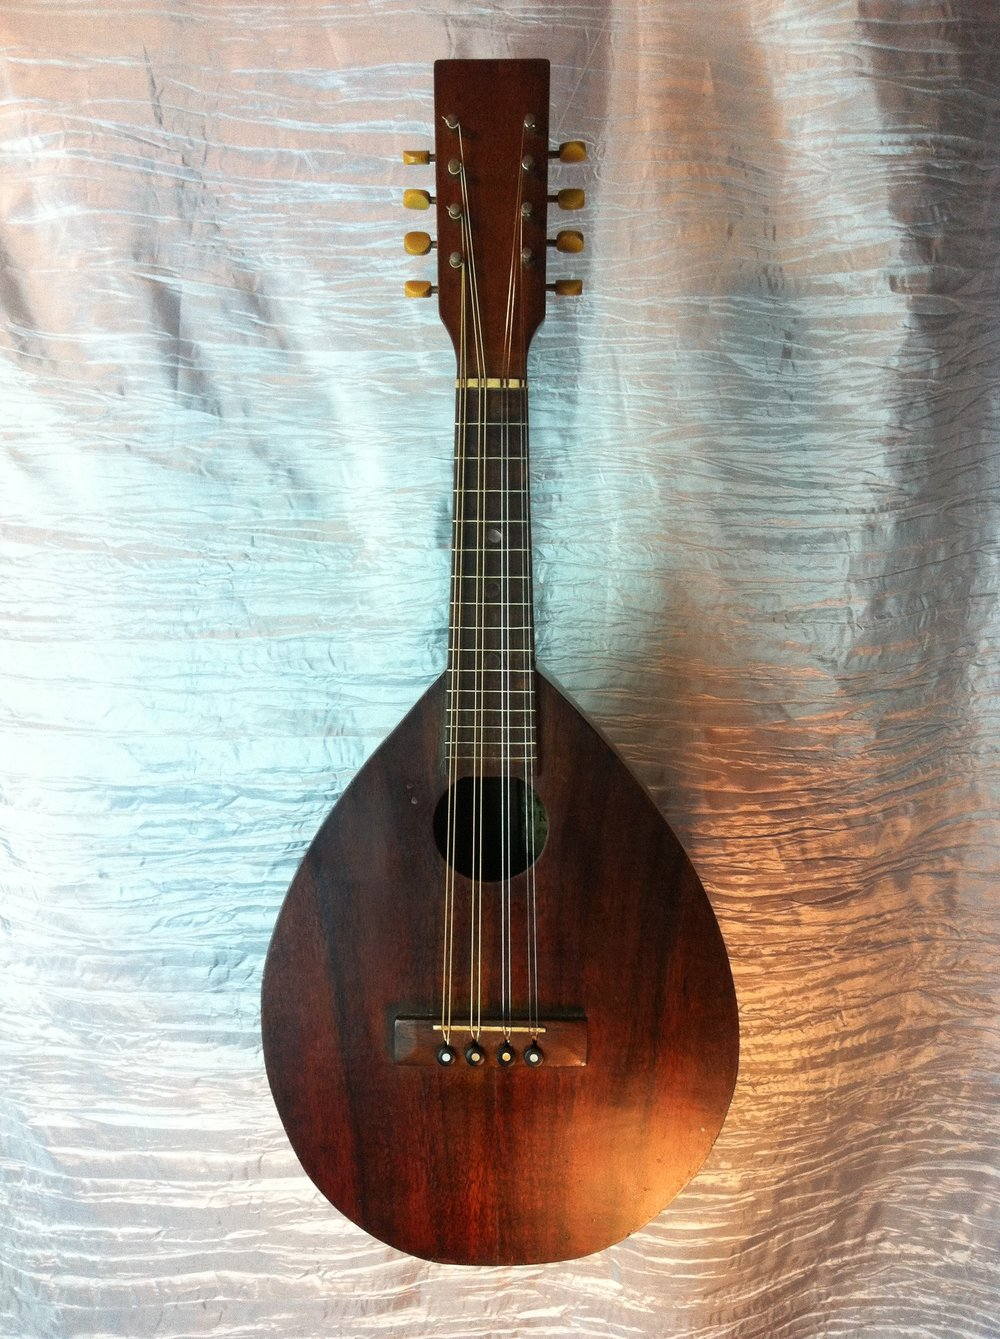 A pleasure to meet this old fella! Perhaps the only all Koa, Kamaka tear drop mandolin.